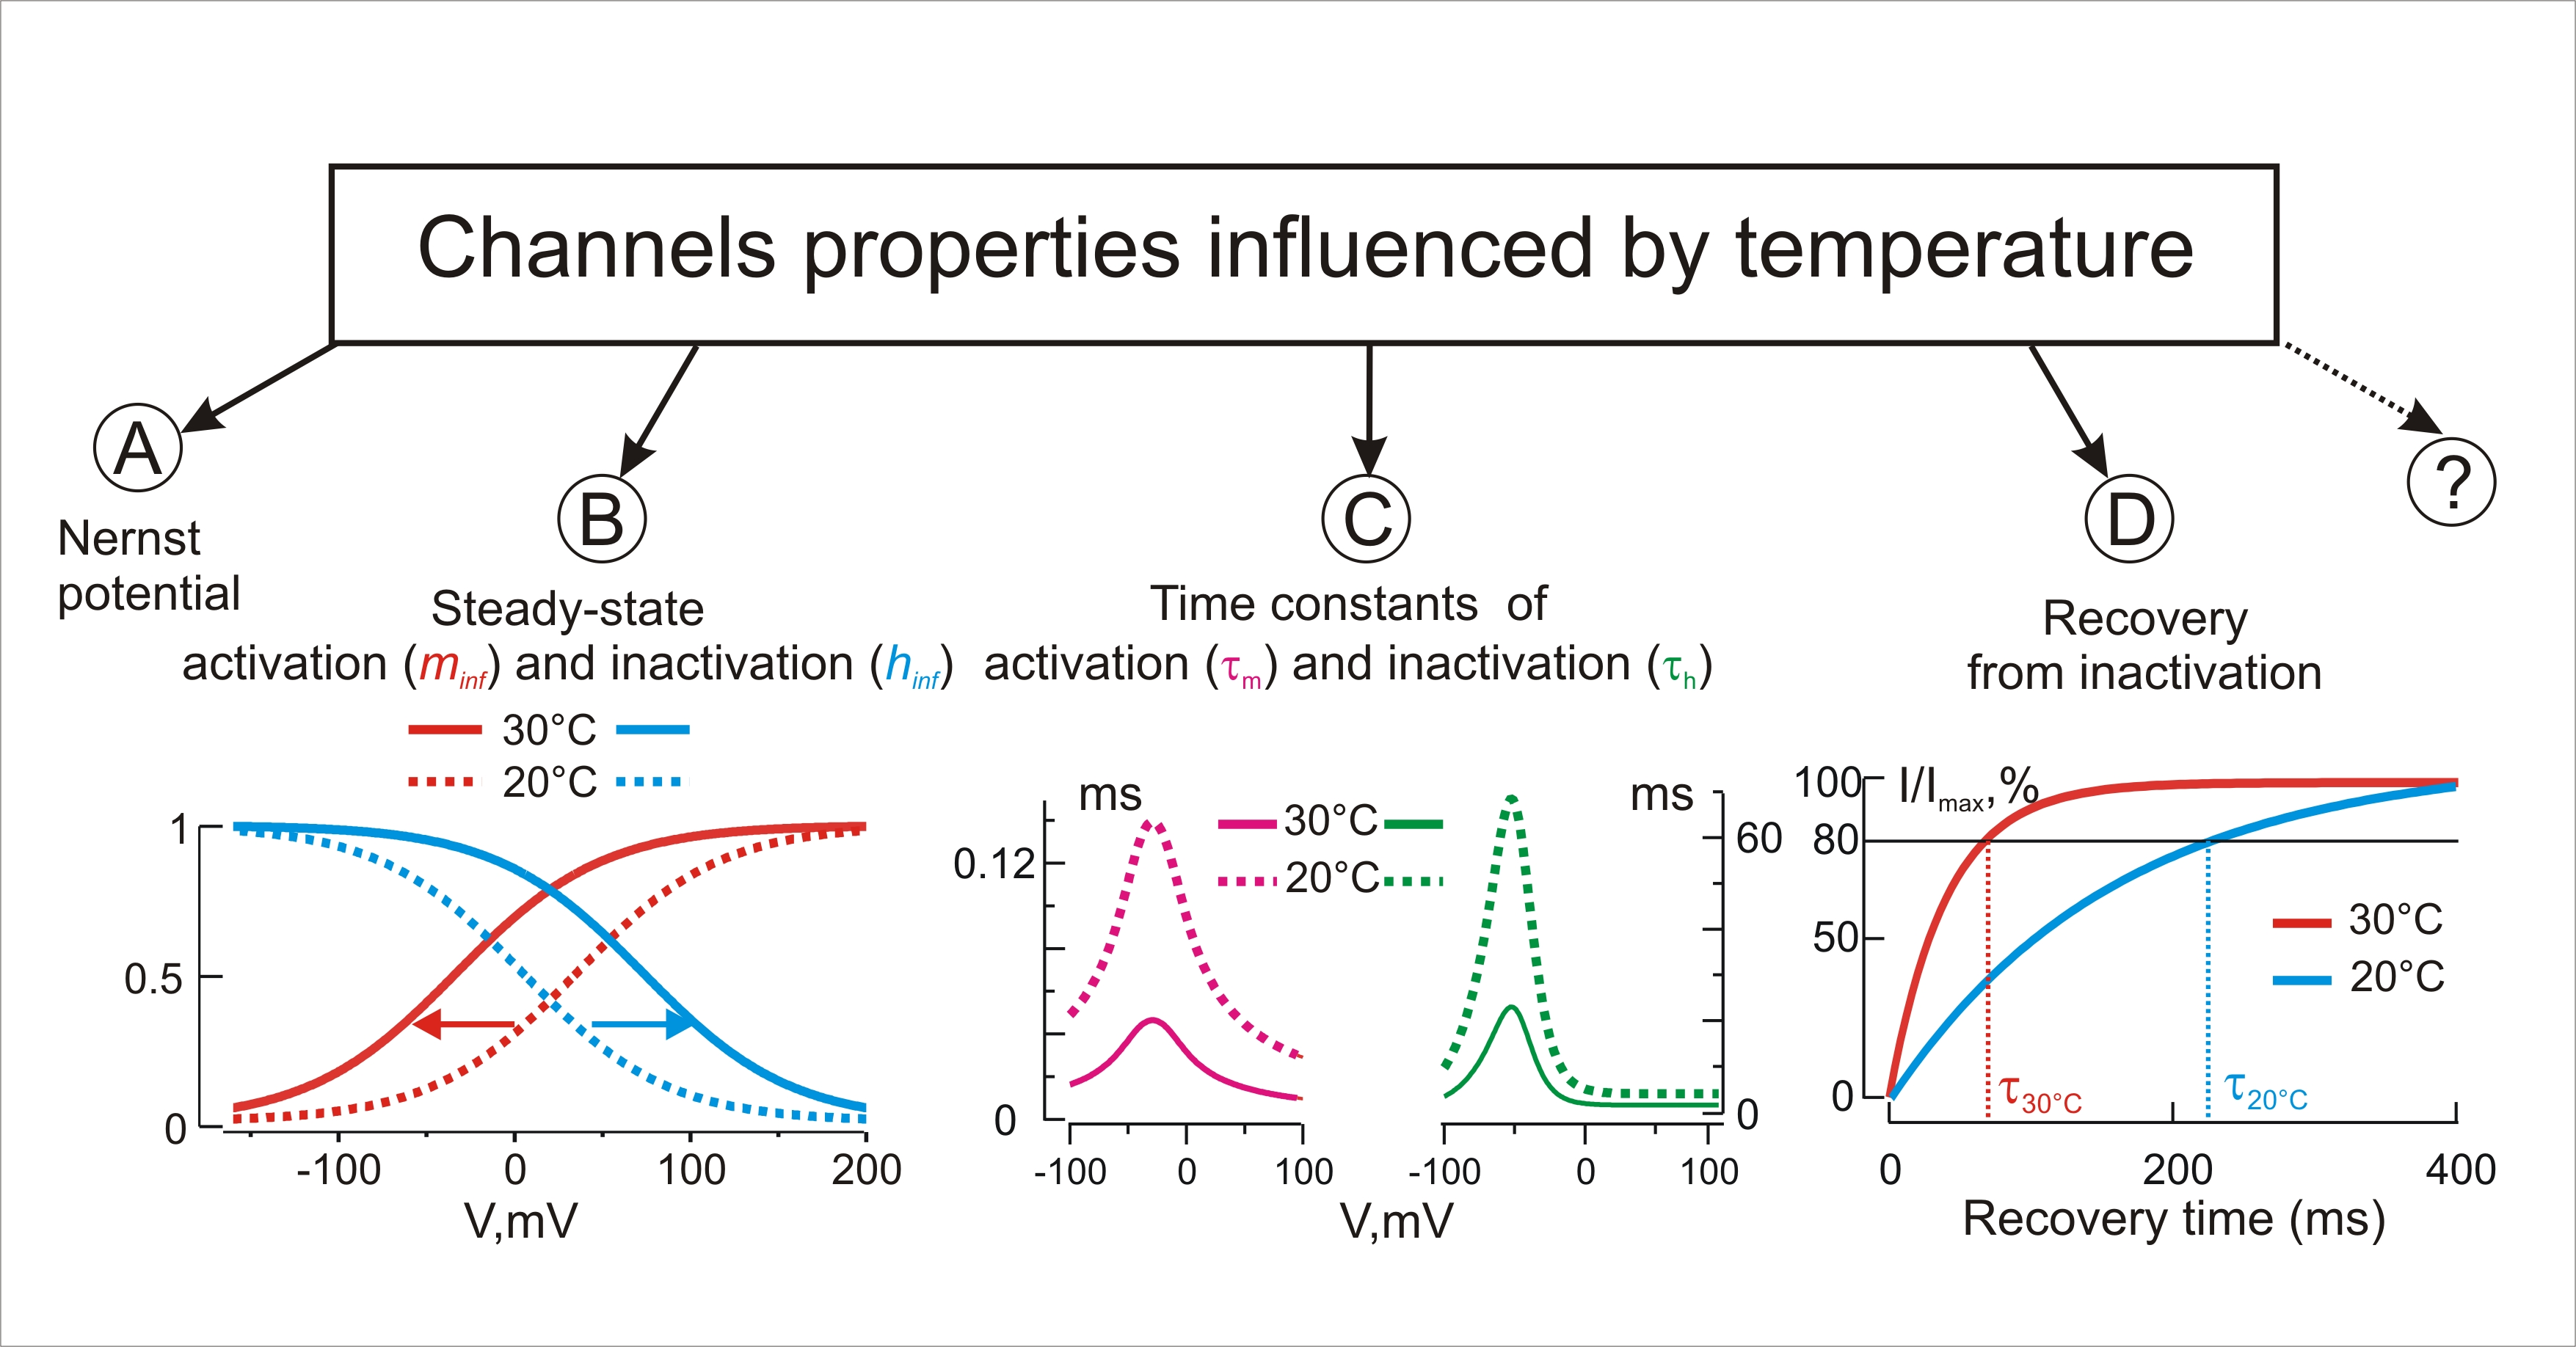 Figure 1. Temperature influences the Nernst equilibrium potential (A), steady-state kinetics (B) and time constants (C) of activation and inactivation, recovery from inactivation (D), and, possibly, other yet unknown biophysical properties of channels.